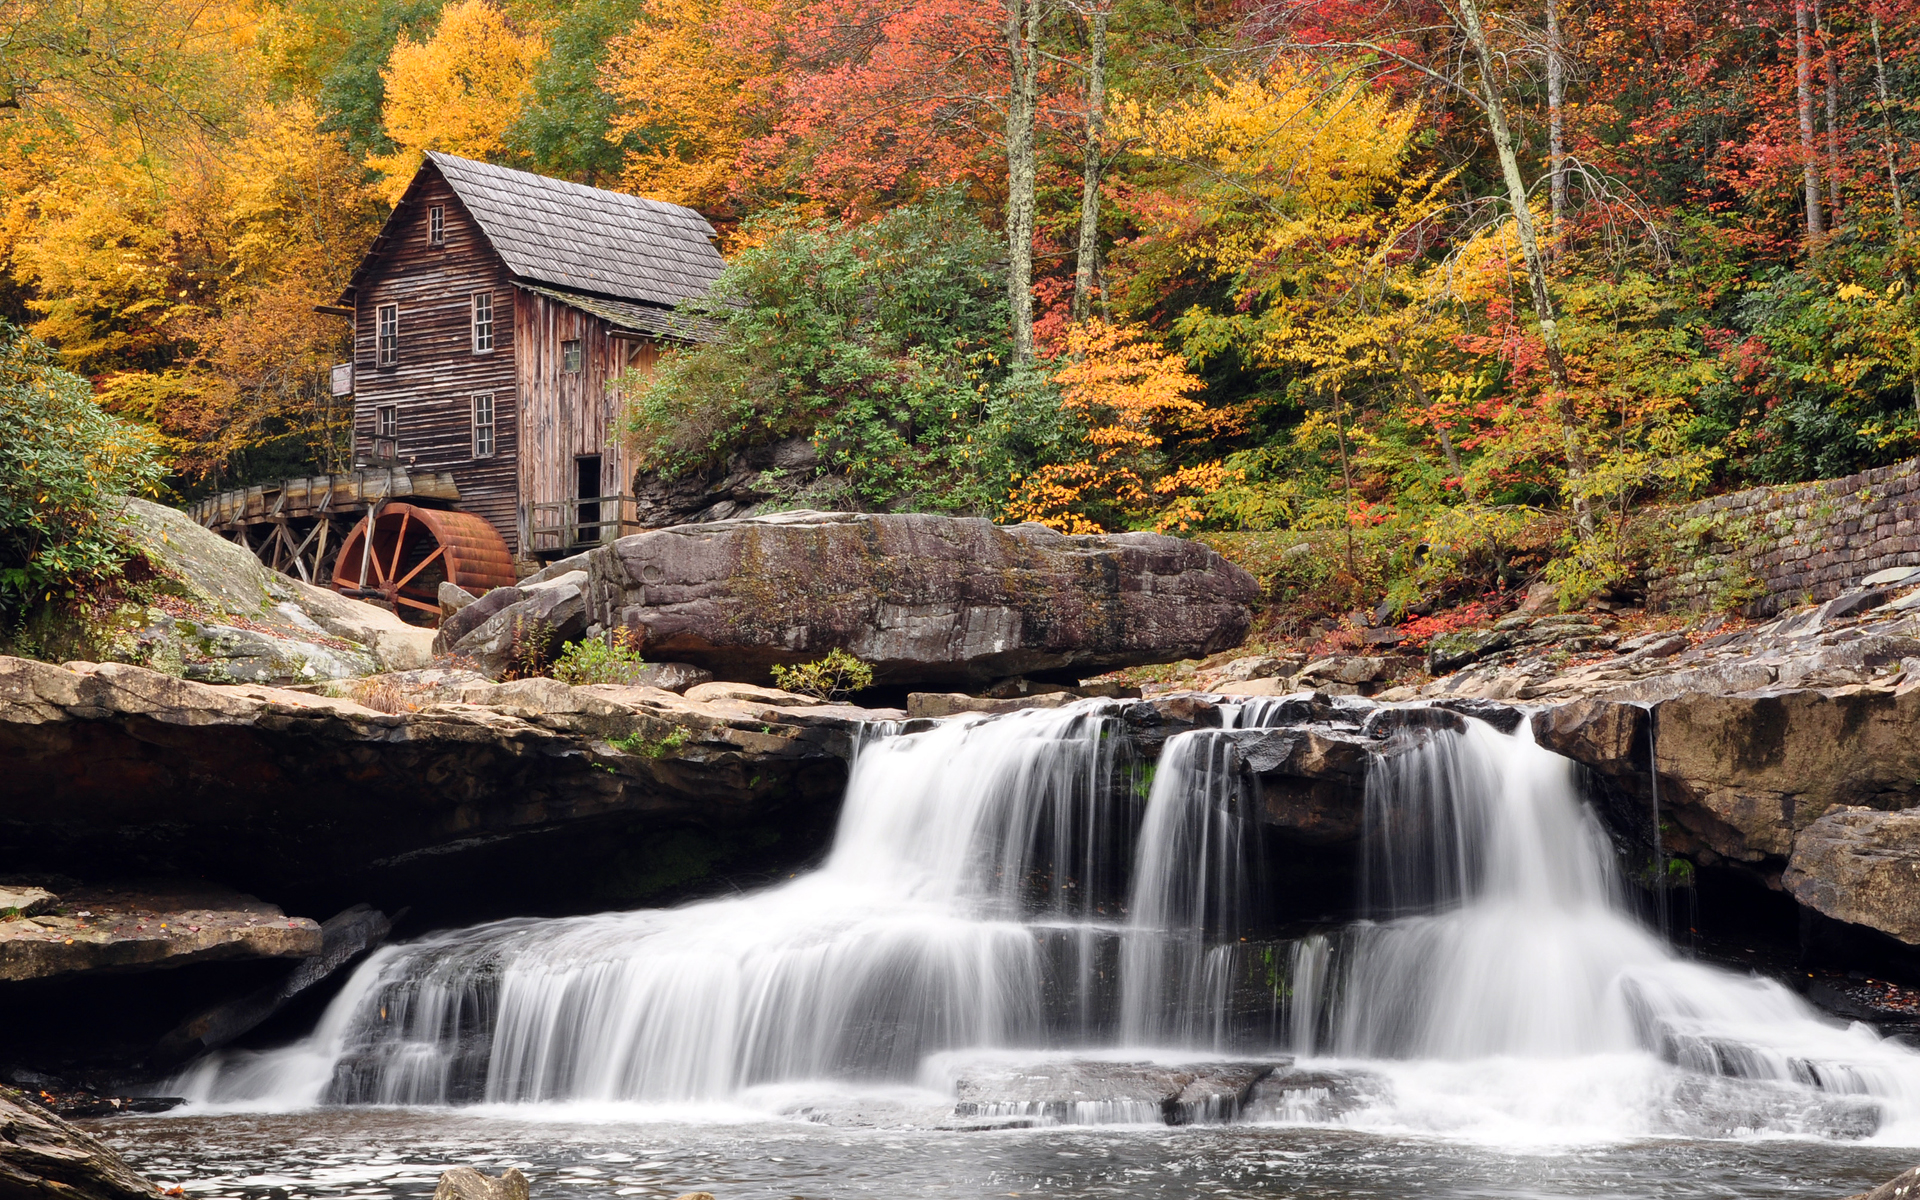 waterfall old barn forest Wallpaper Background 54551 1920x1200